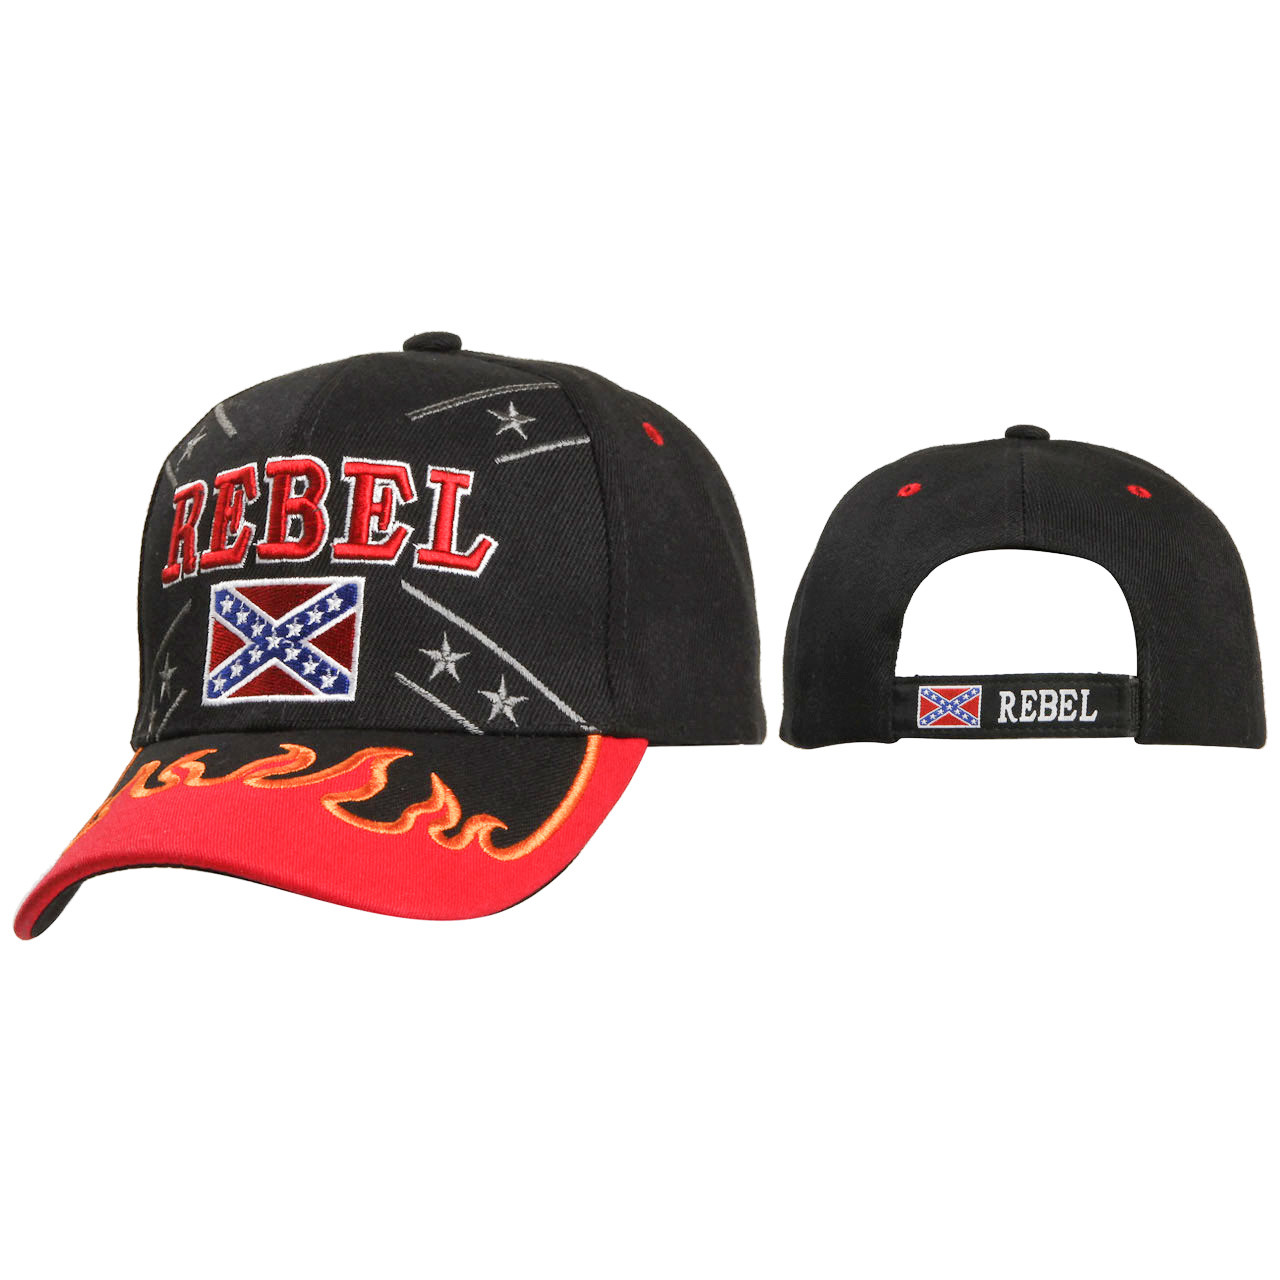 Caps Wholesale Rebel with Flames